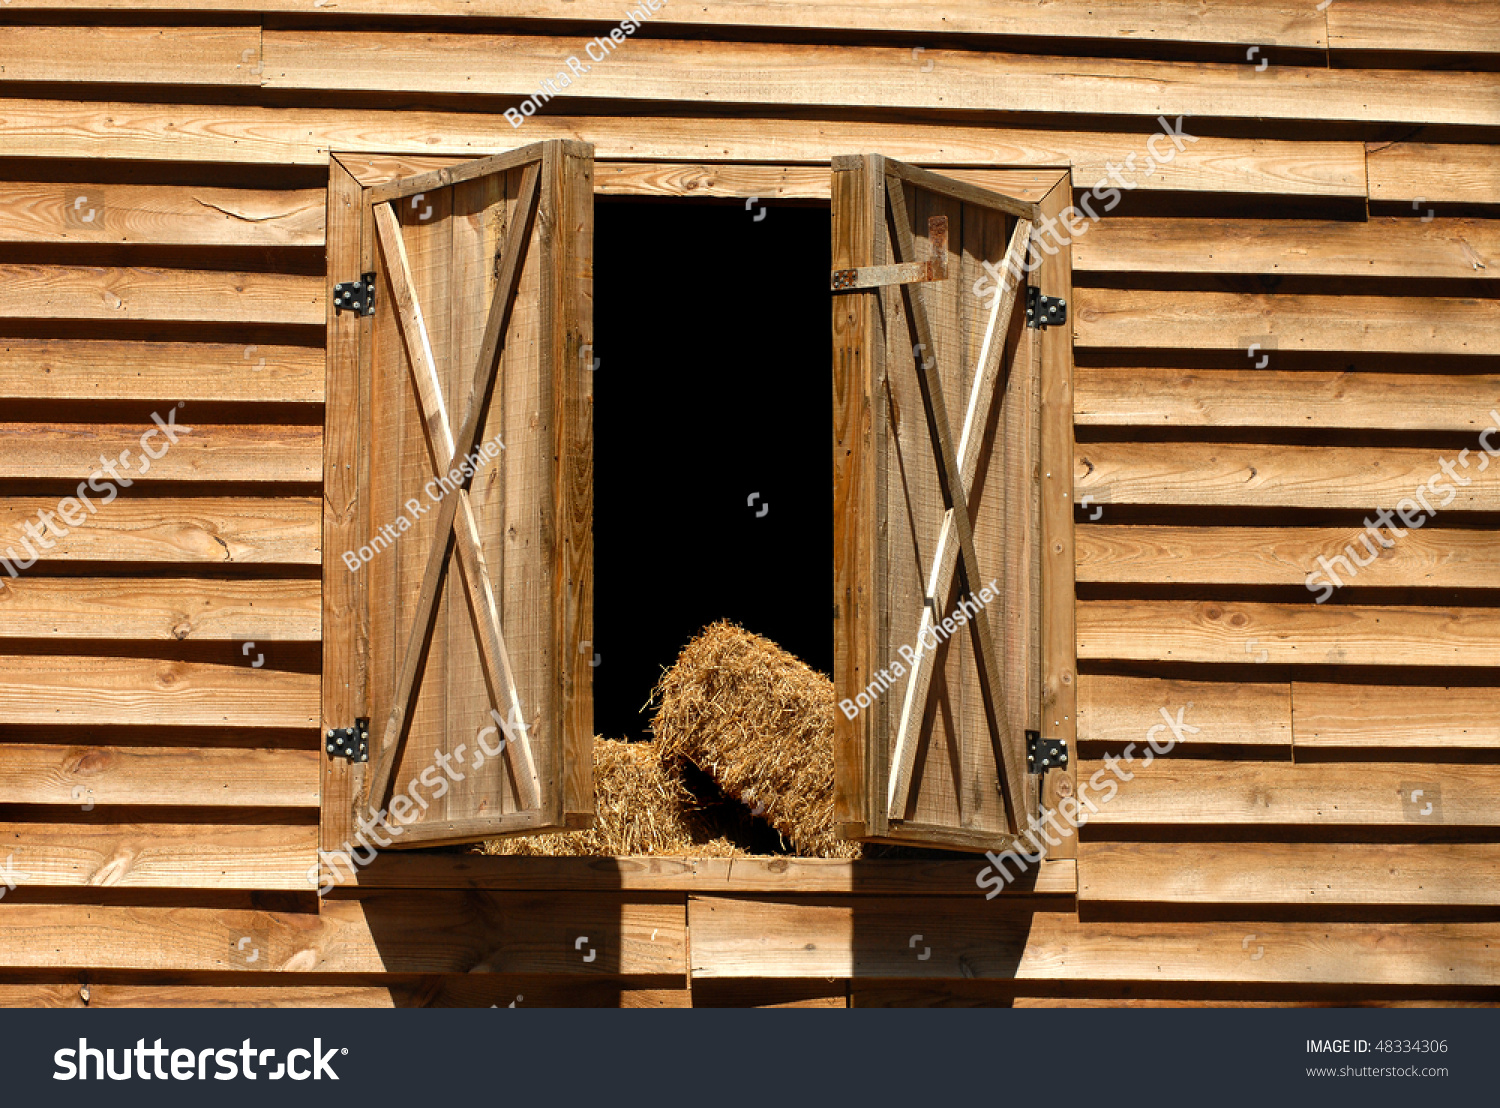 Wooden Barn Has Loft Doors Open With Bales Of Hay Ready